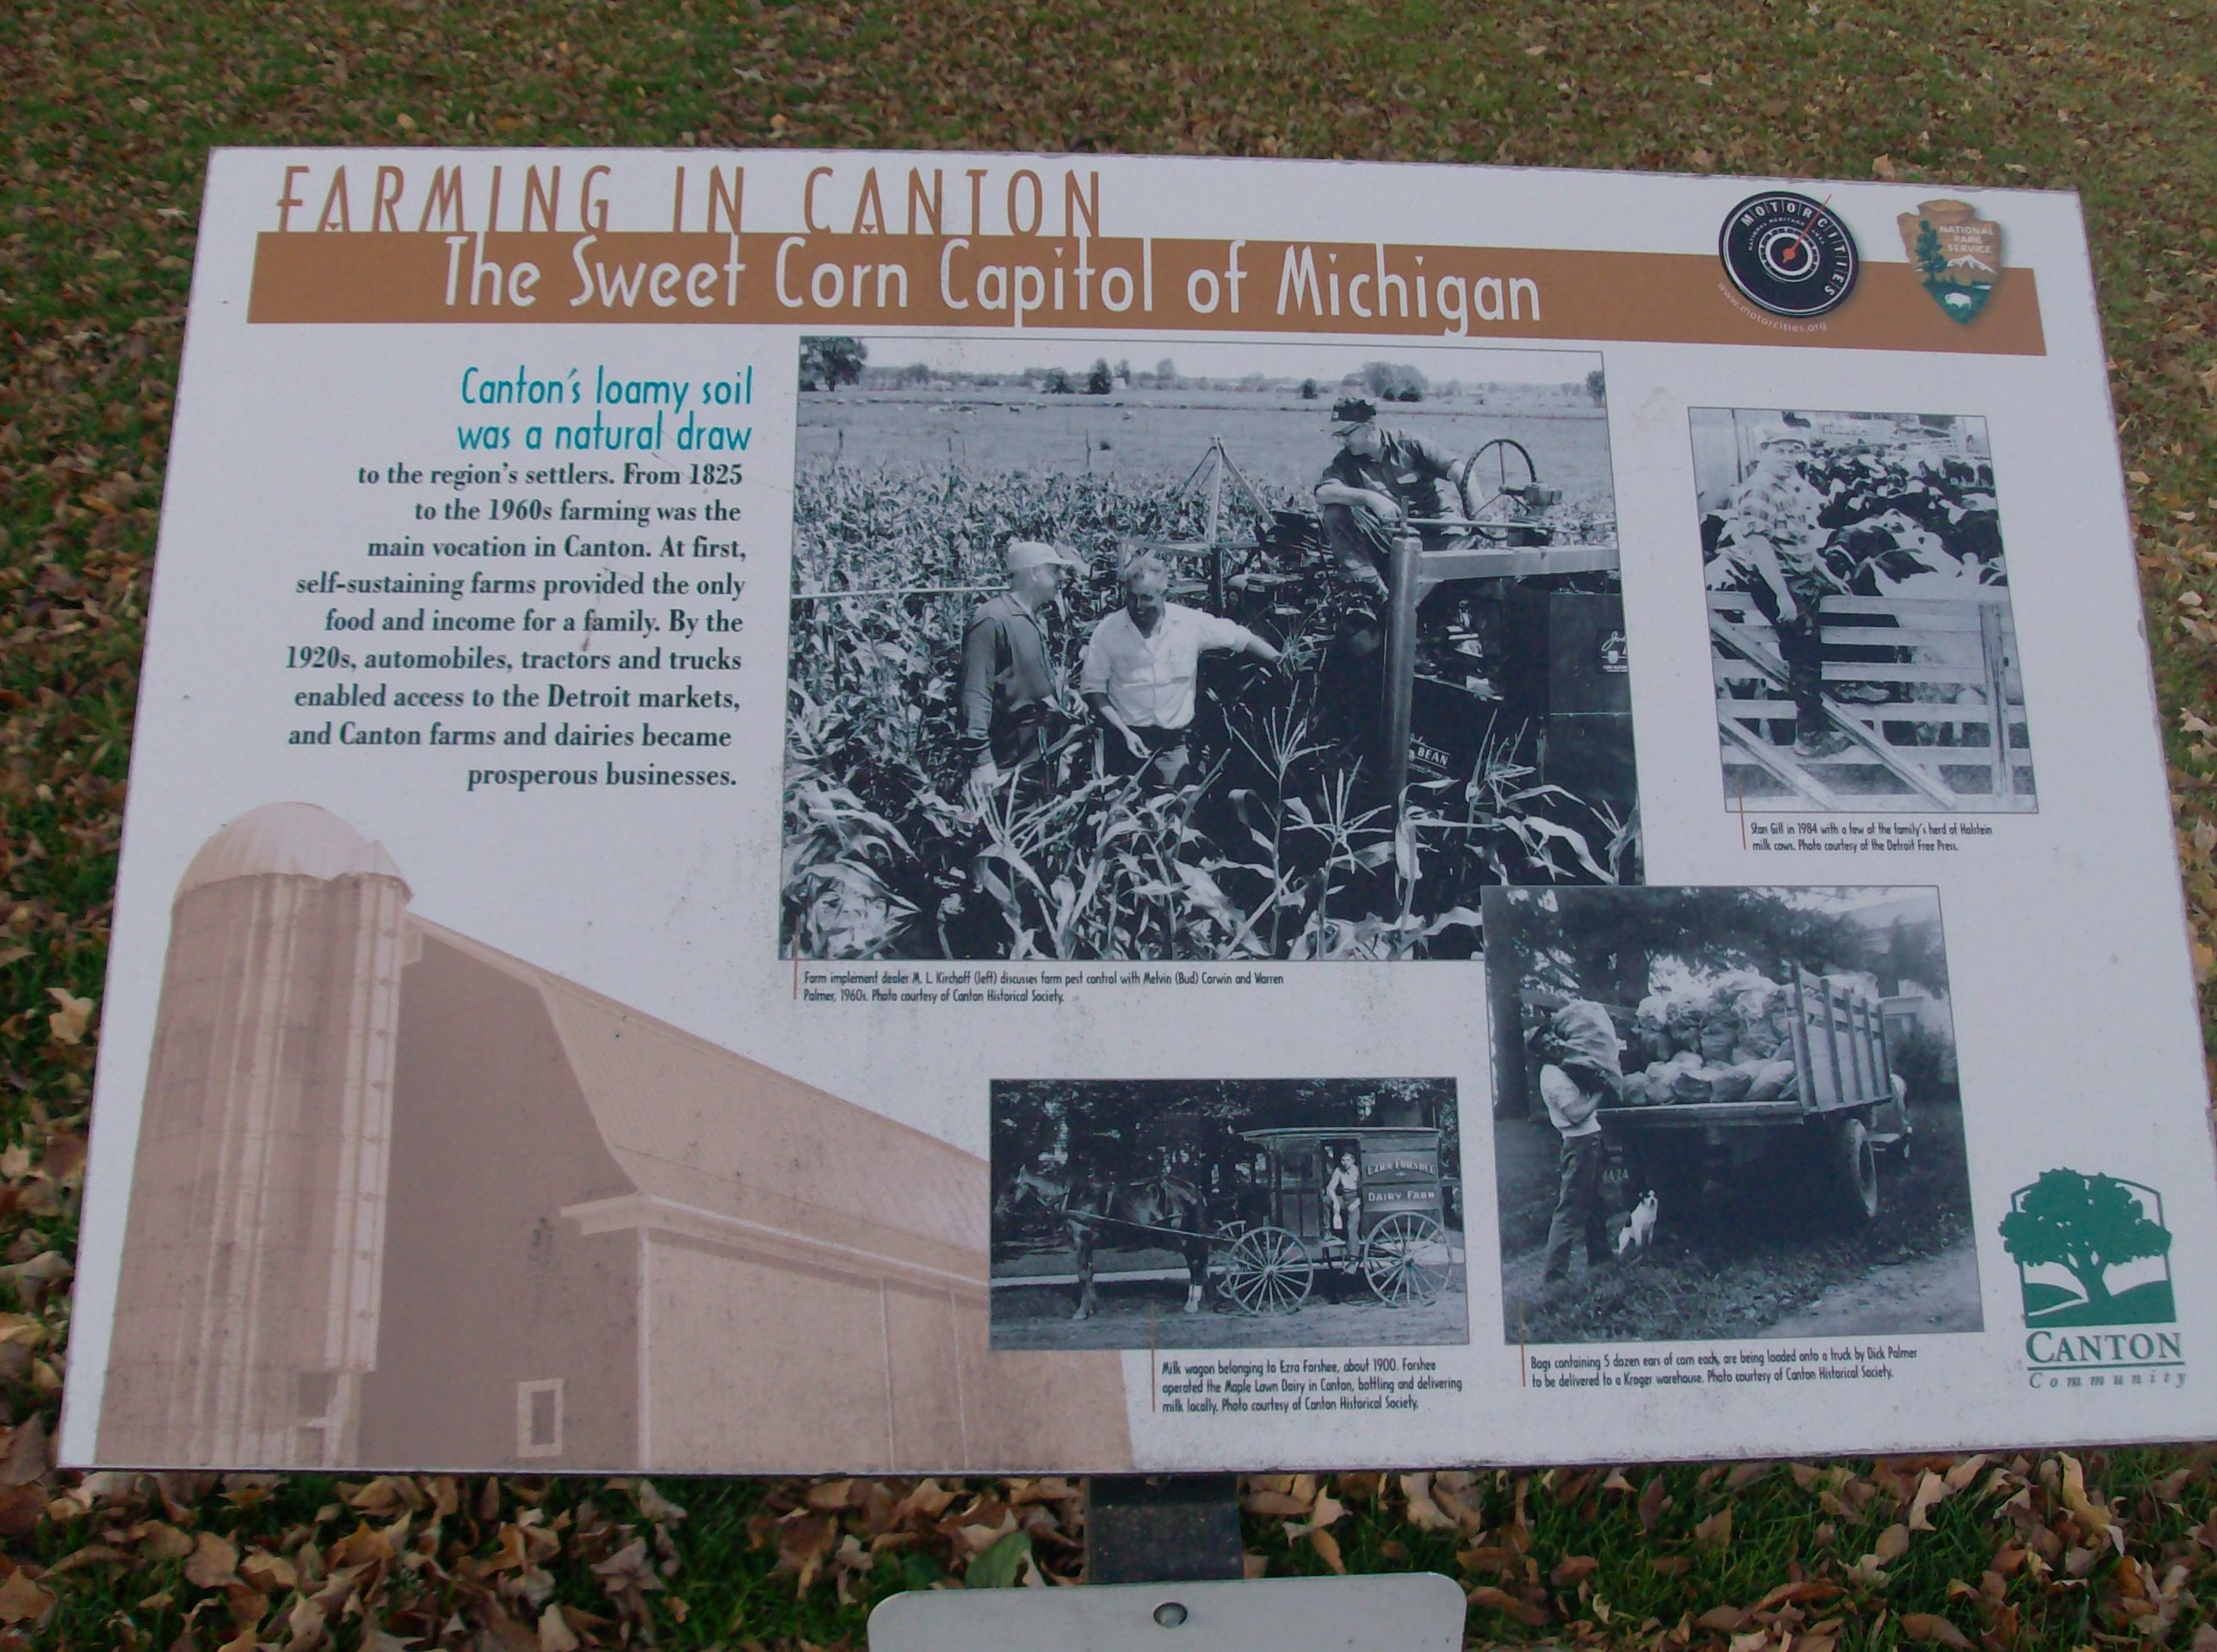 Farming in Canton: The Sweet Corn Capitol of Michigan Marker